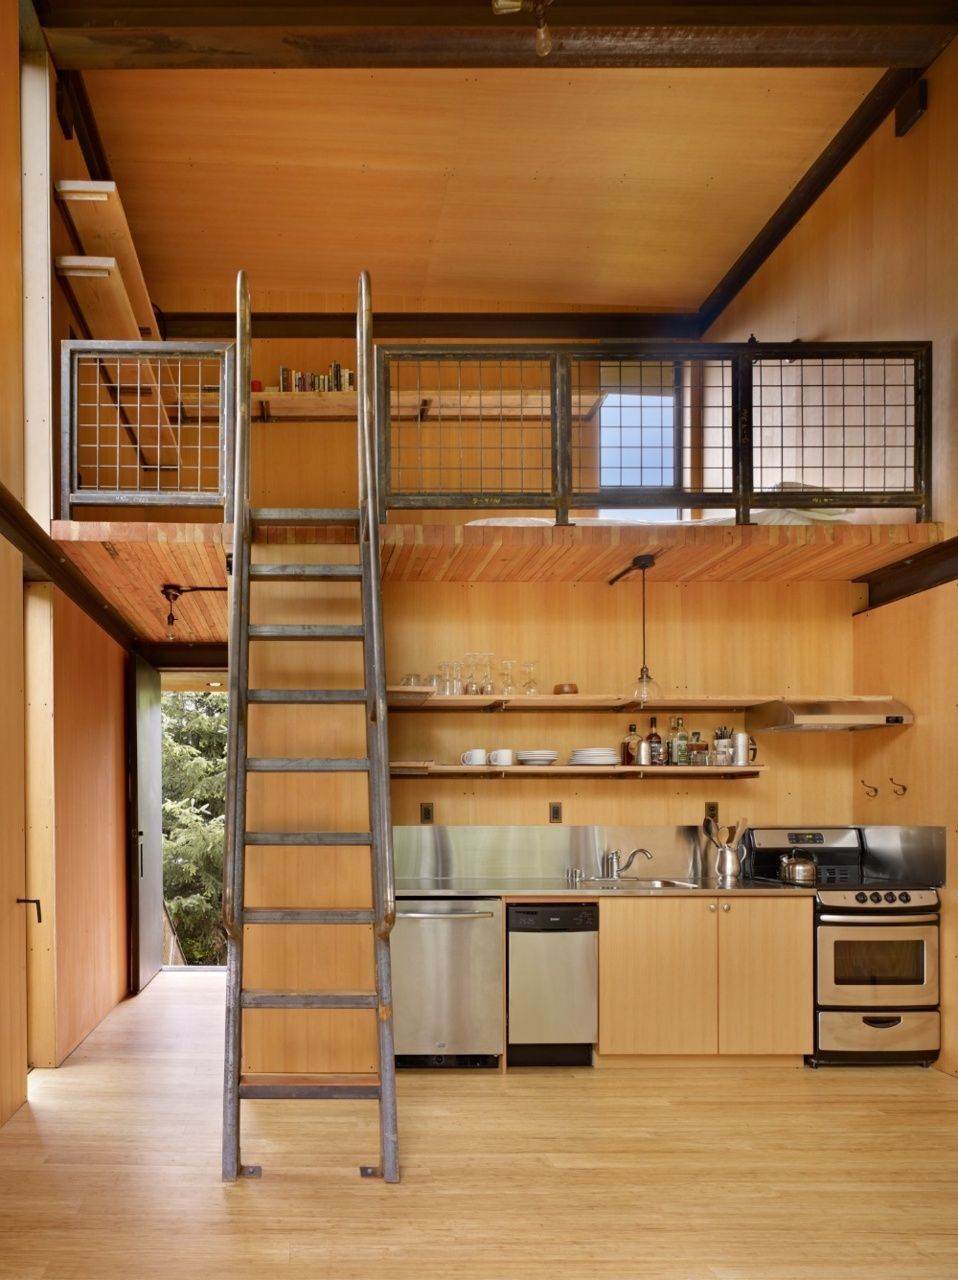 small loft design in modern rustic  style wood finish kitchen idea with stainless steel hardware natural wood ladder